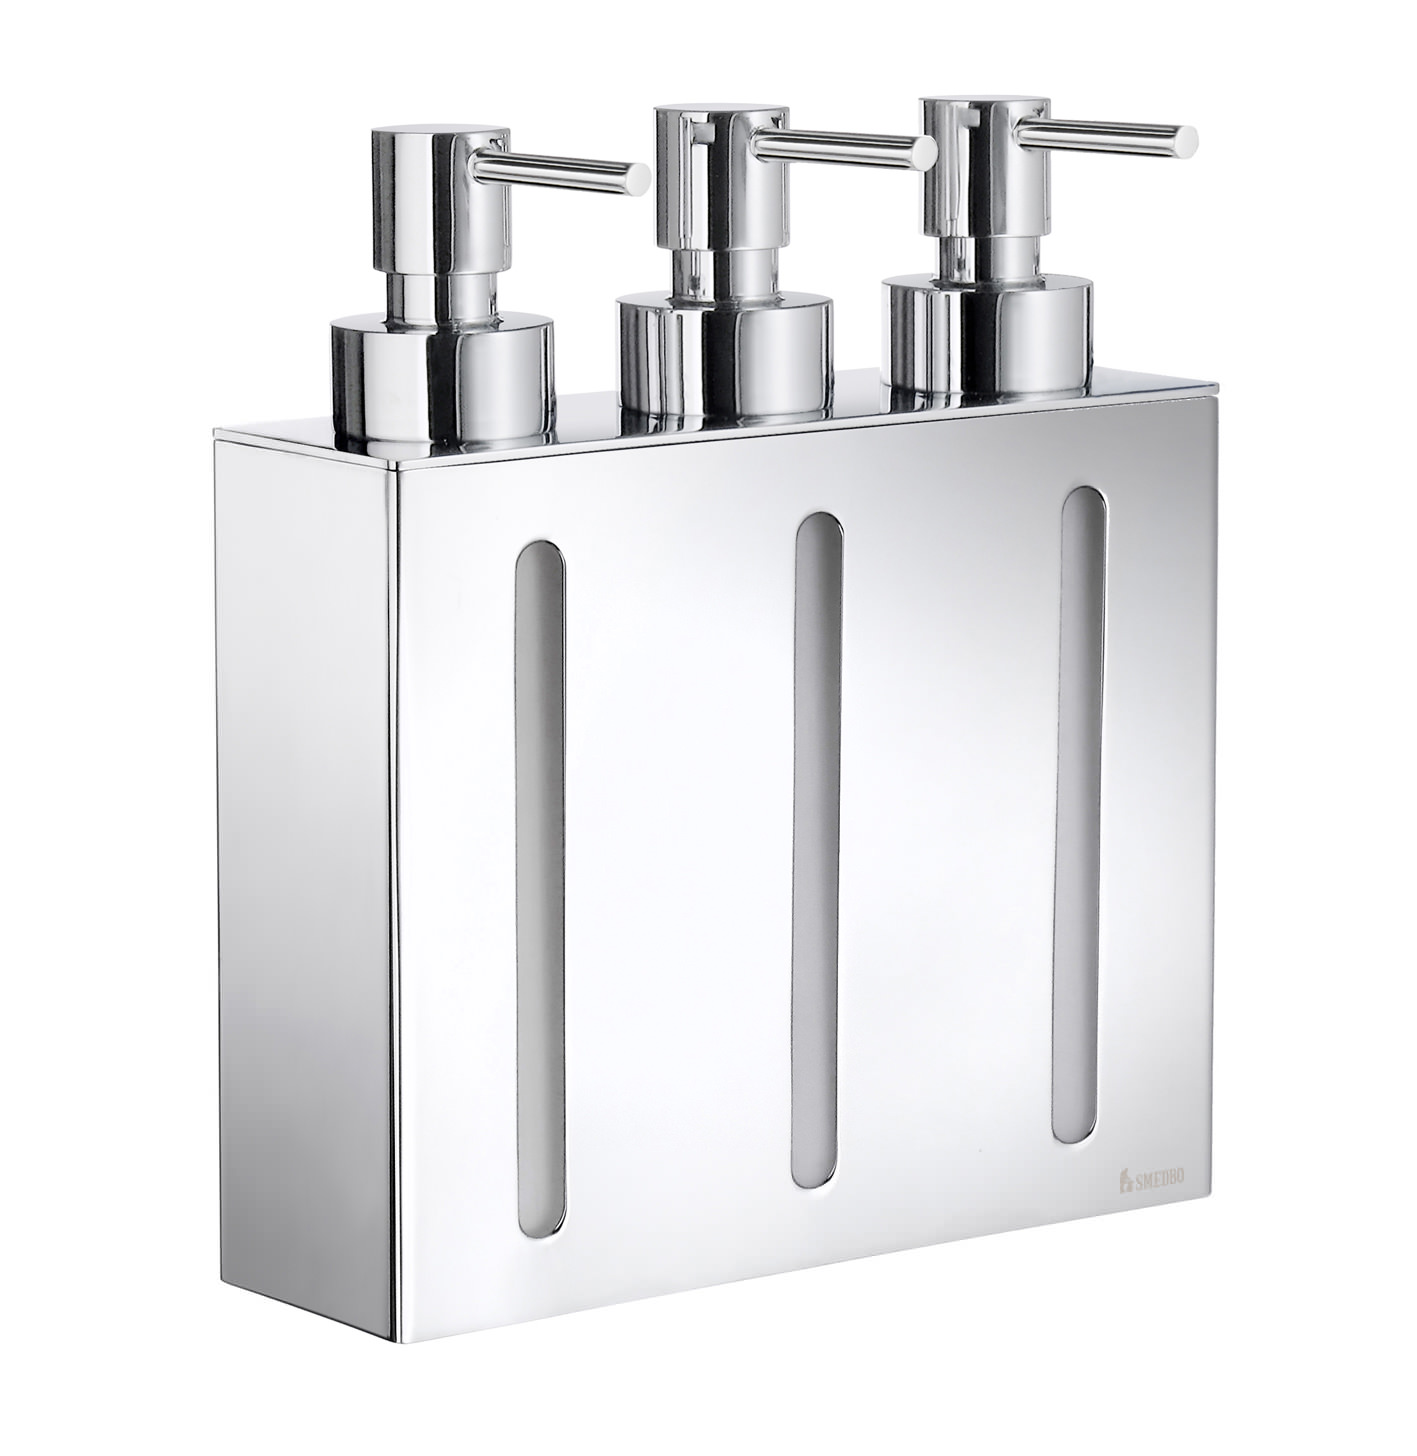 Smedbo outline wallmounted triple soap dispenser fk259 - Wall mounted shampoo conditioner dispenser ...